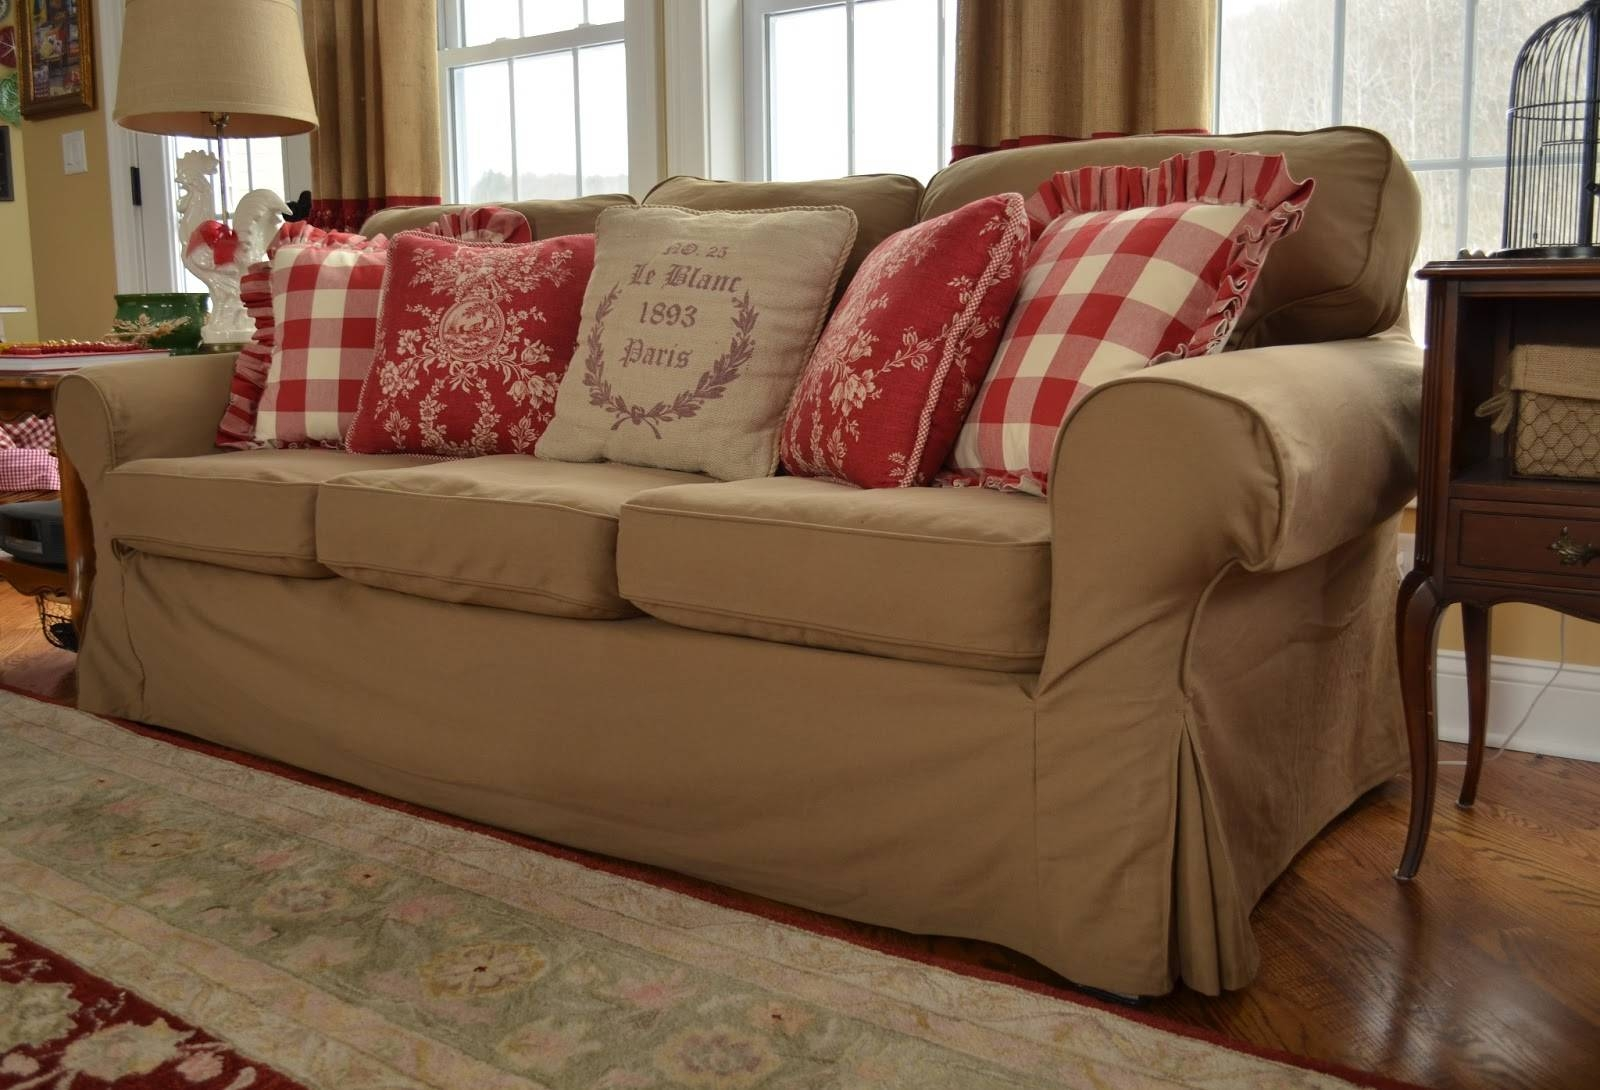 The Thrifty Gypsy: Slipcover Secret with Arhaus Slipcovers (Image 15 of 15)